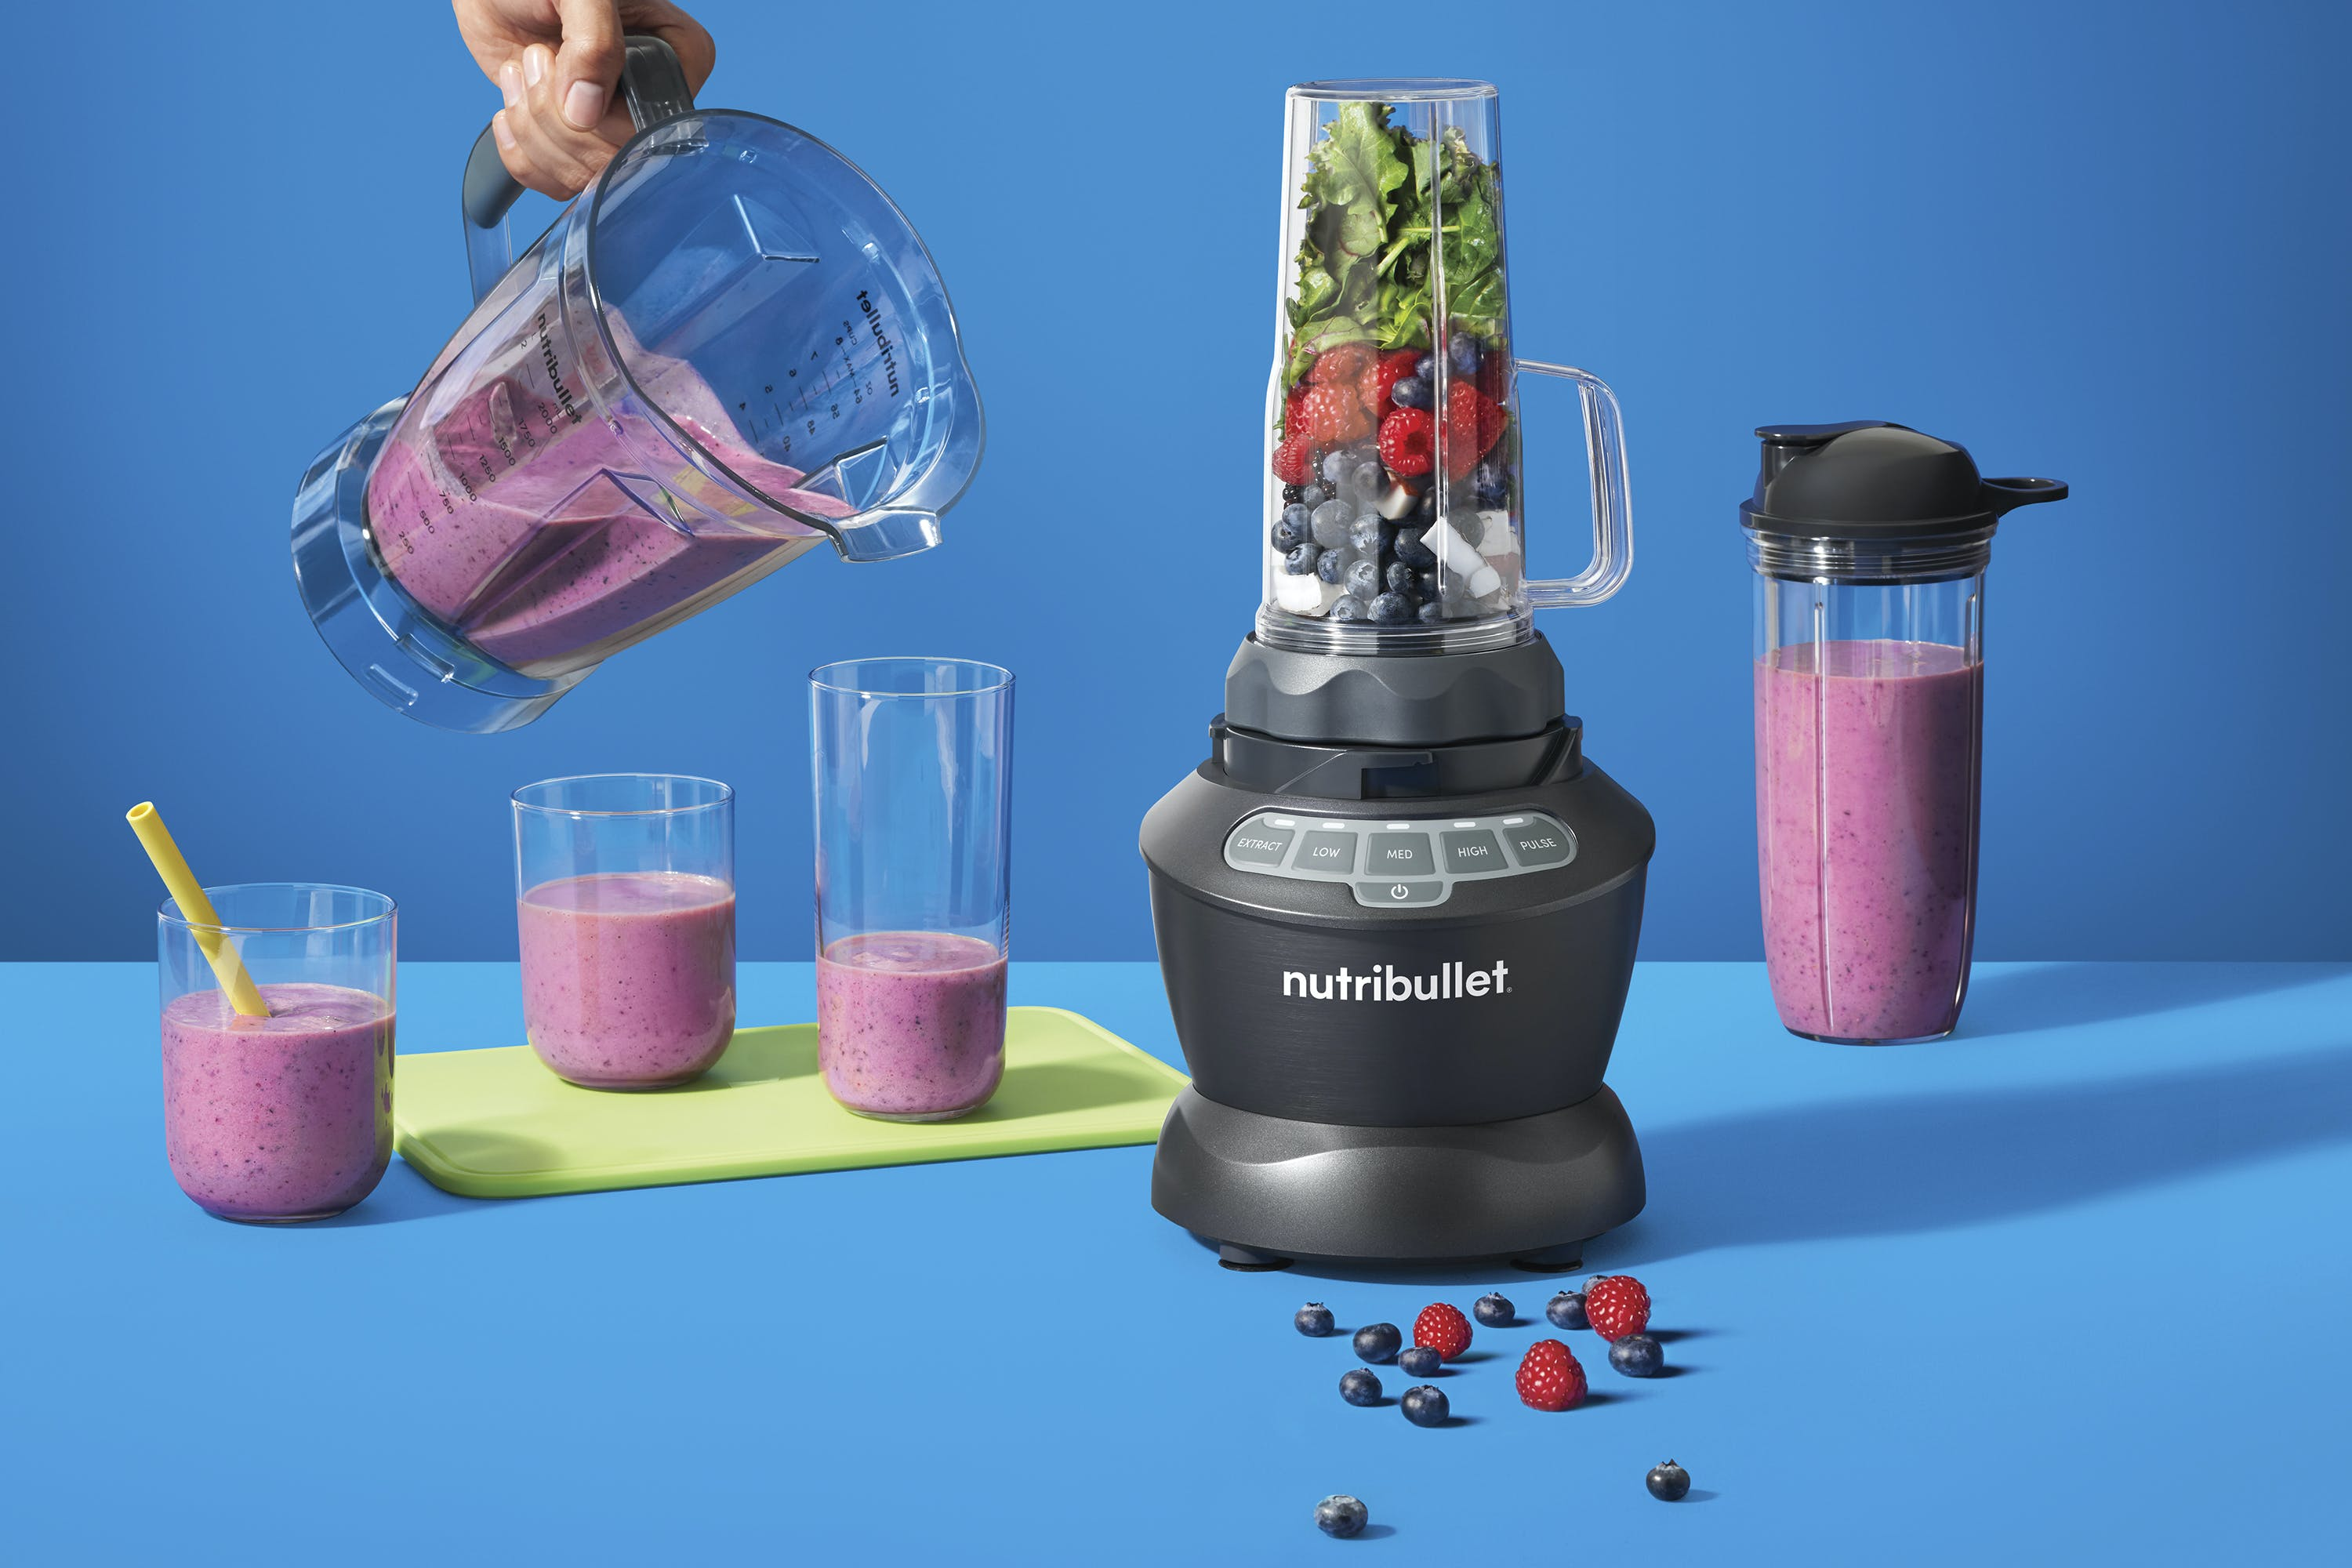 New to the NutriBullet Family